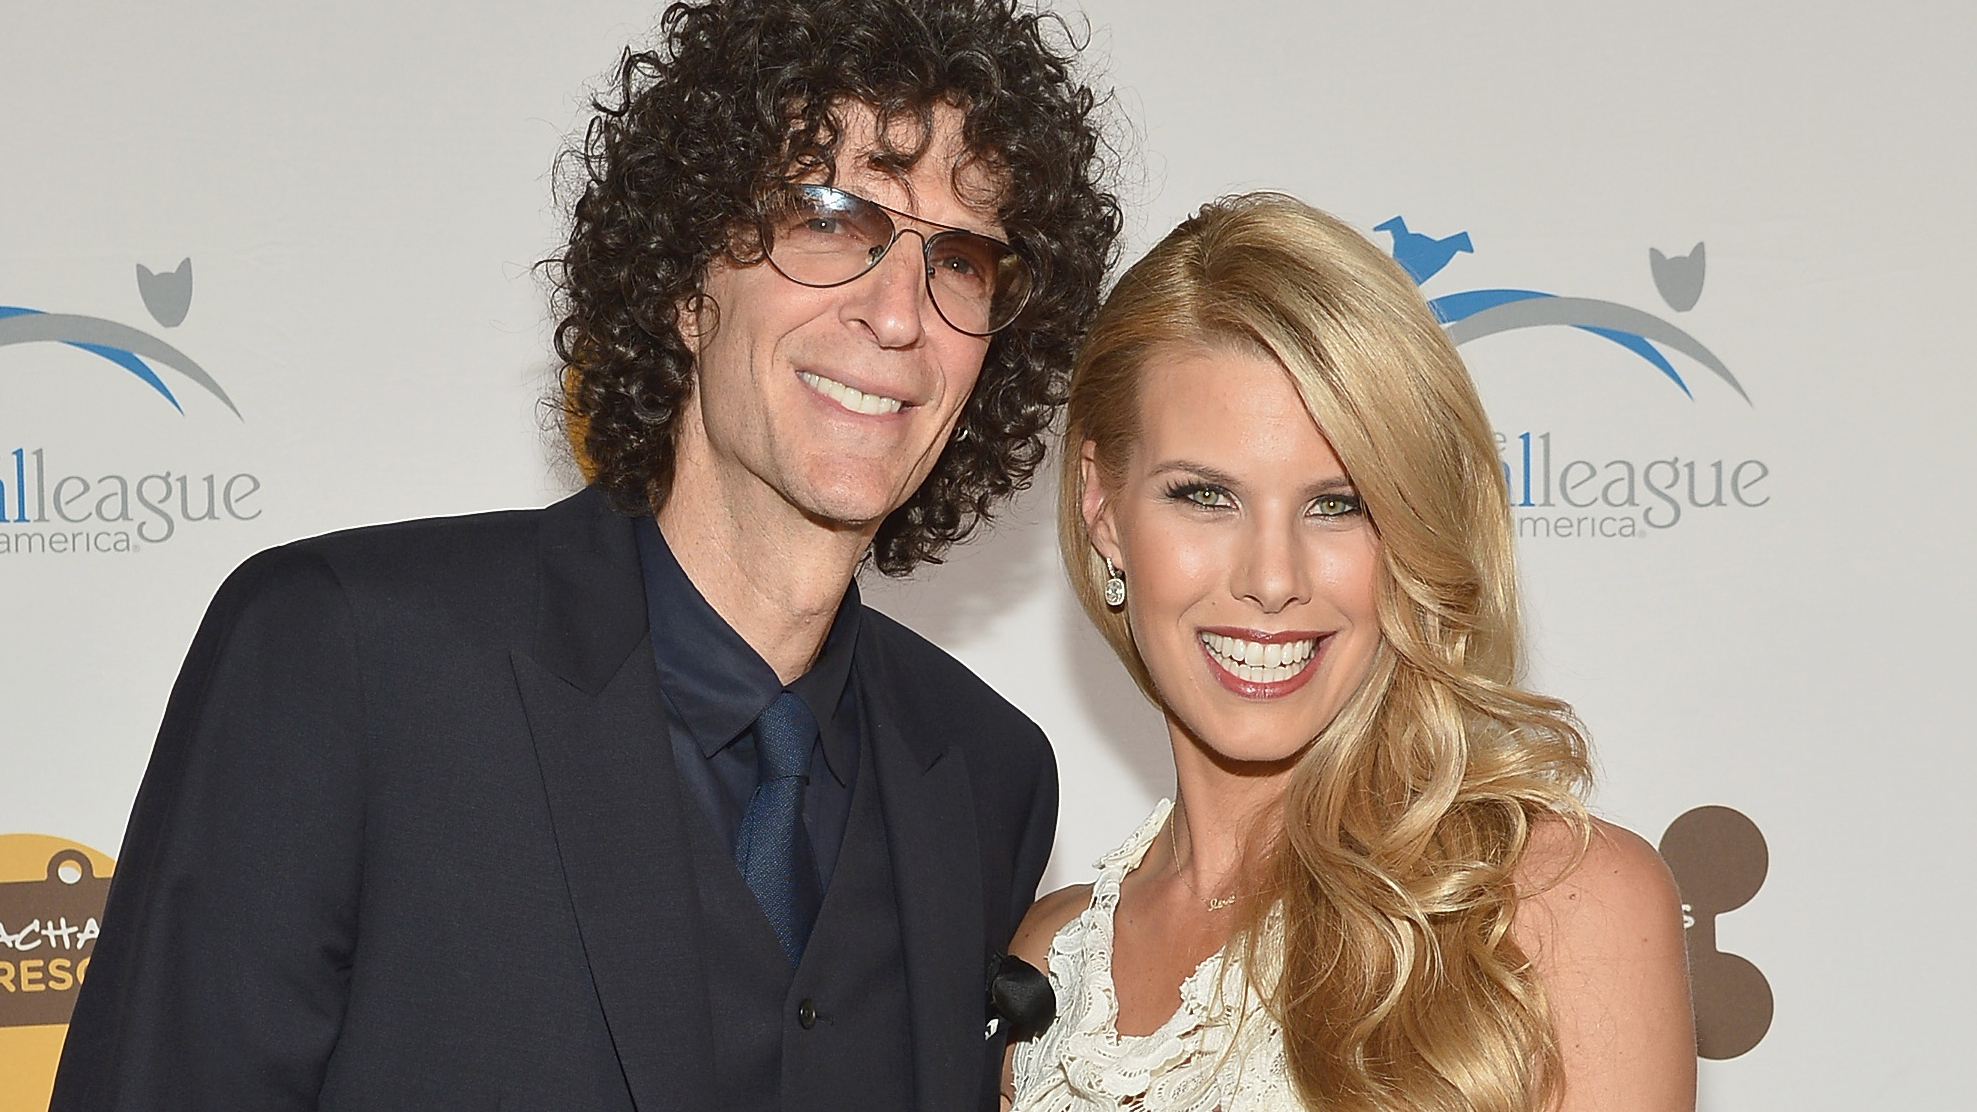 PHOTO:Howard Stern (L) and Beth Ostrosky Stern attend the 2013 Animal League America Celebrity gala at The Waldorf Astoria on Nov. 22, 2013 in New York City.